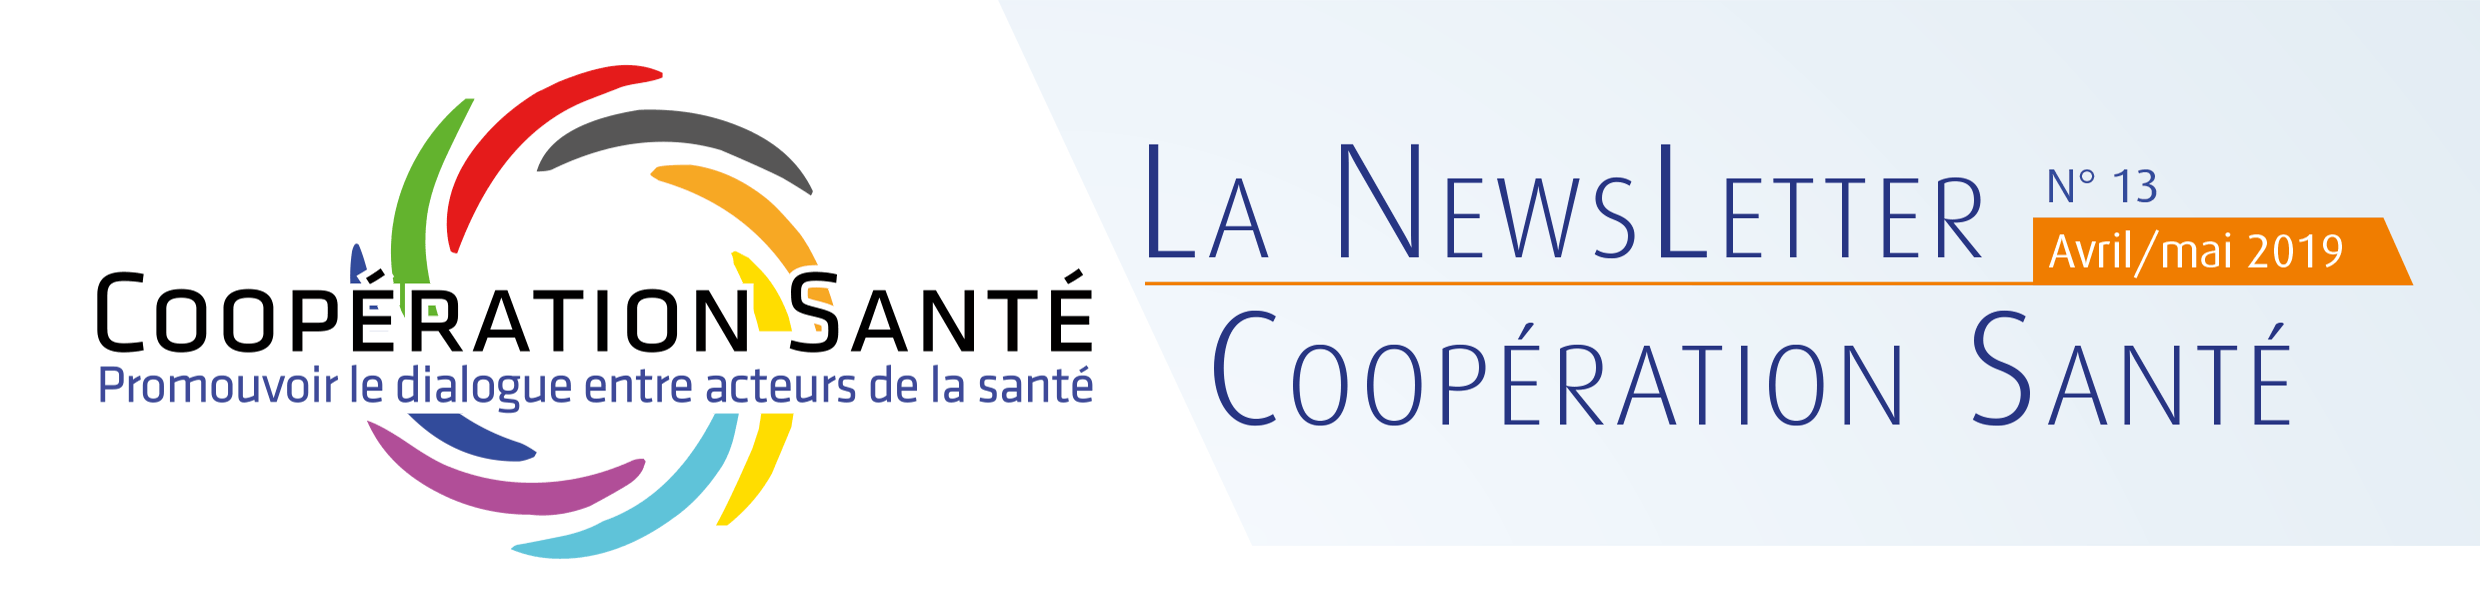 Newsletter-N13-Avril-Mai-2019